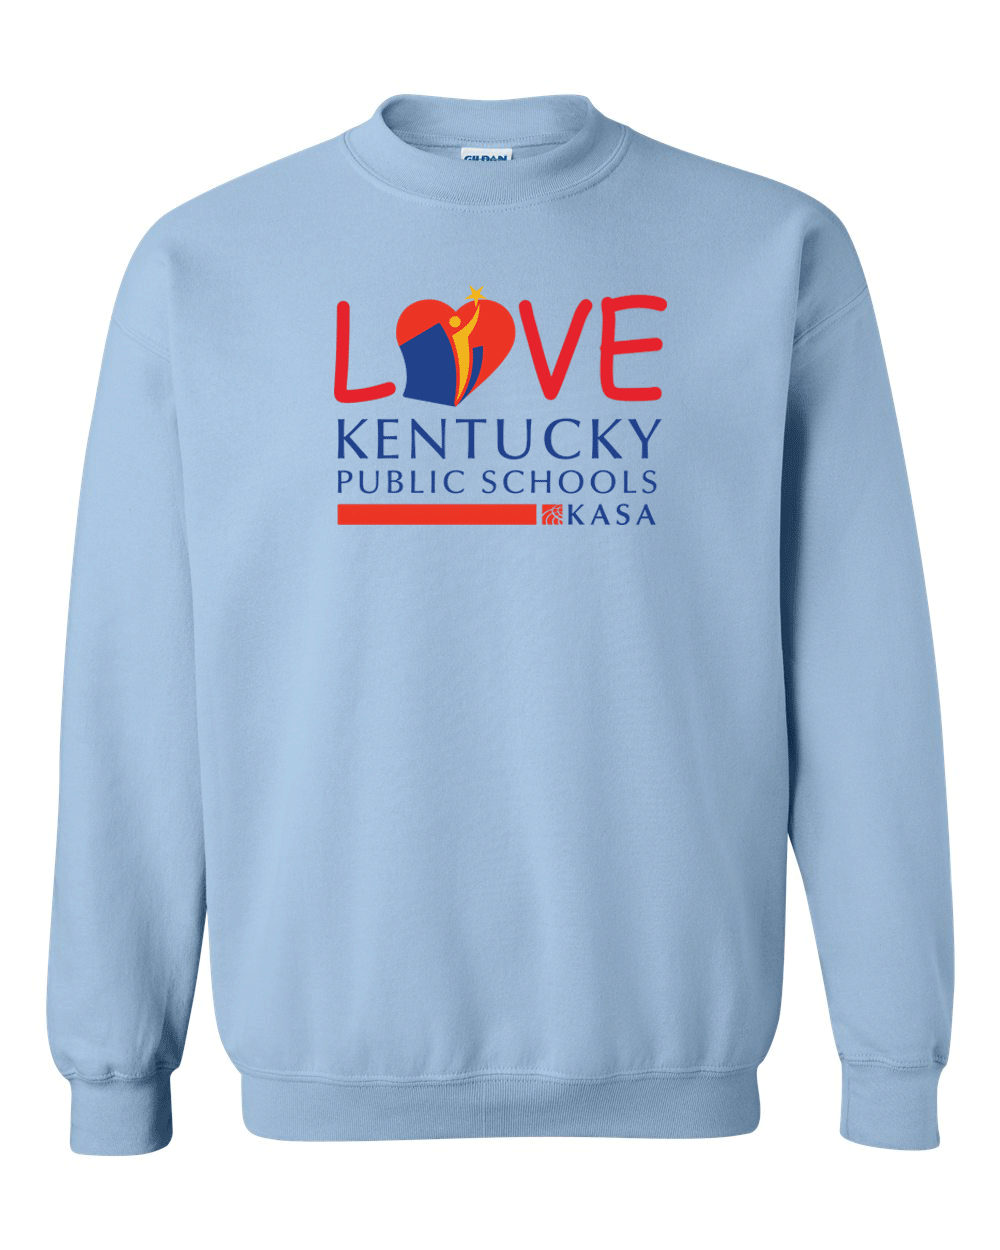 Love Kentucky Public Schools Sweatshirt - Light Blue